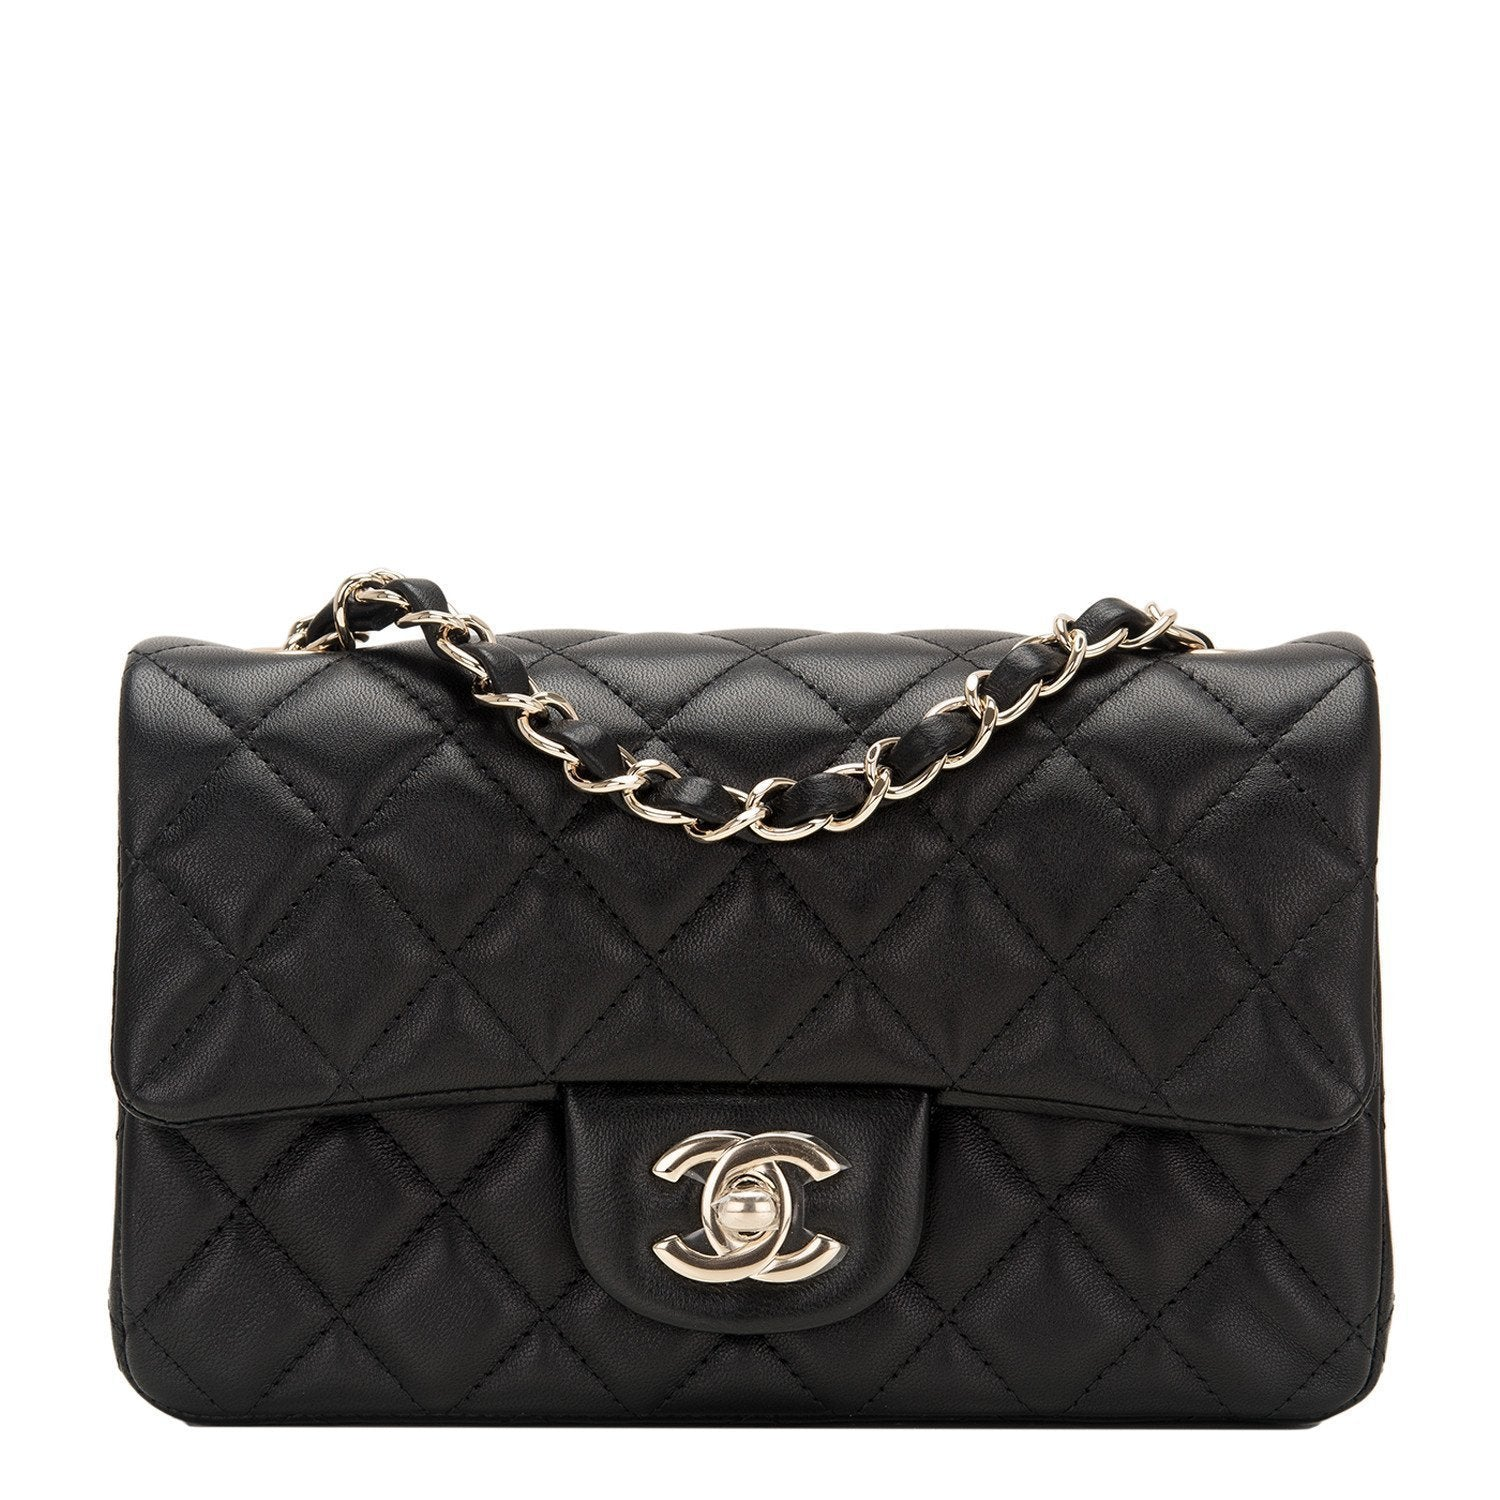 531185d88513f4 Chanel | Lambskin Mini Rectangular Classic Flap with Gold Hardware -  The-Collectory